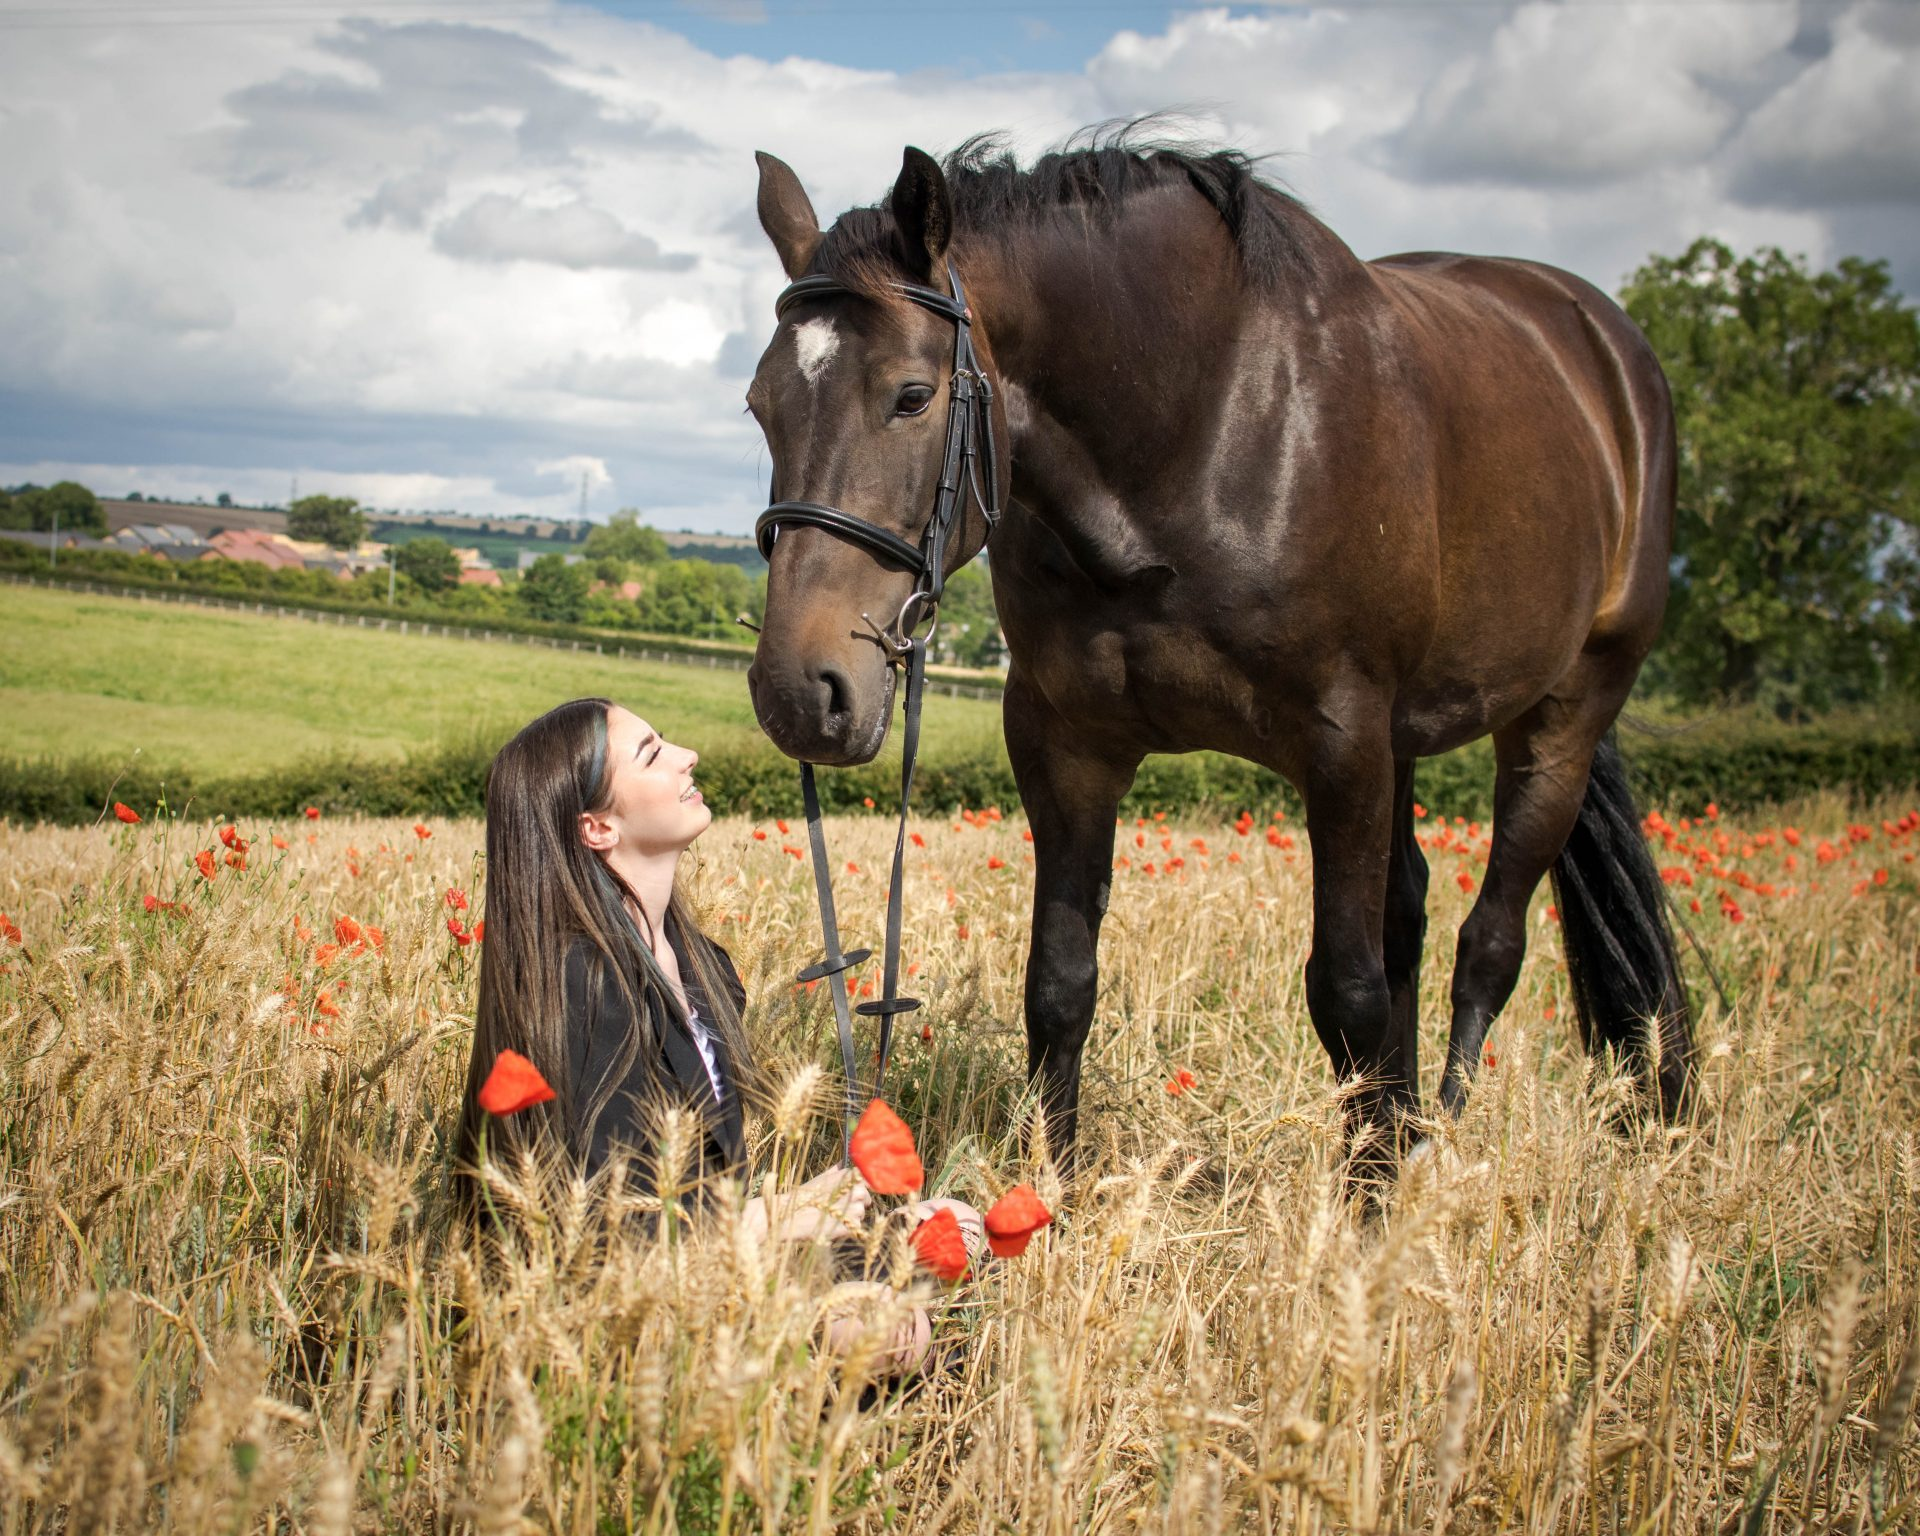 Horse photoshoot with girl sat in poppies